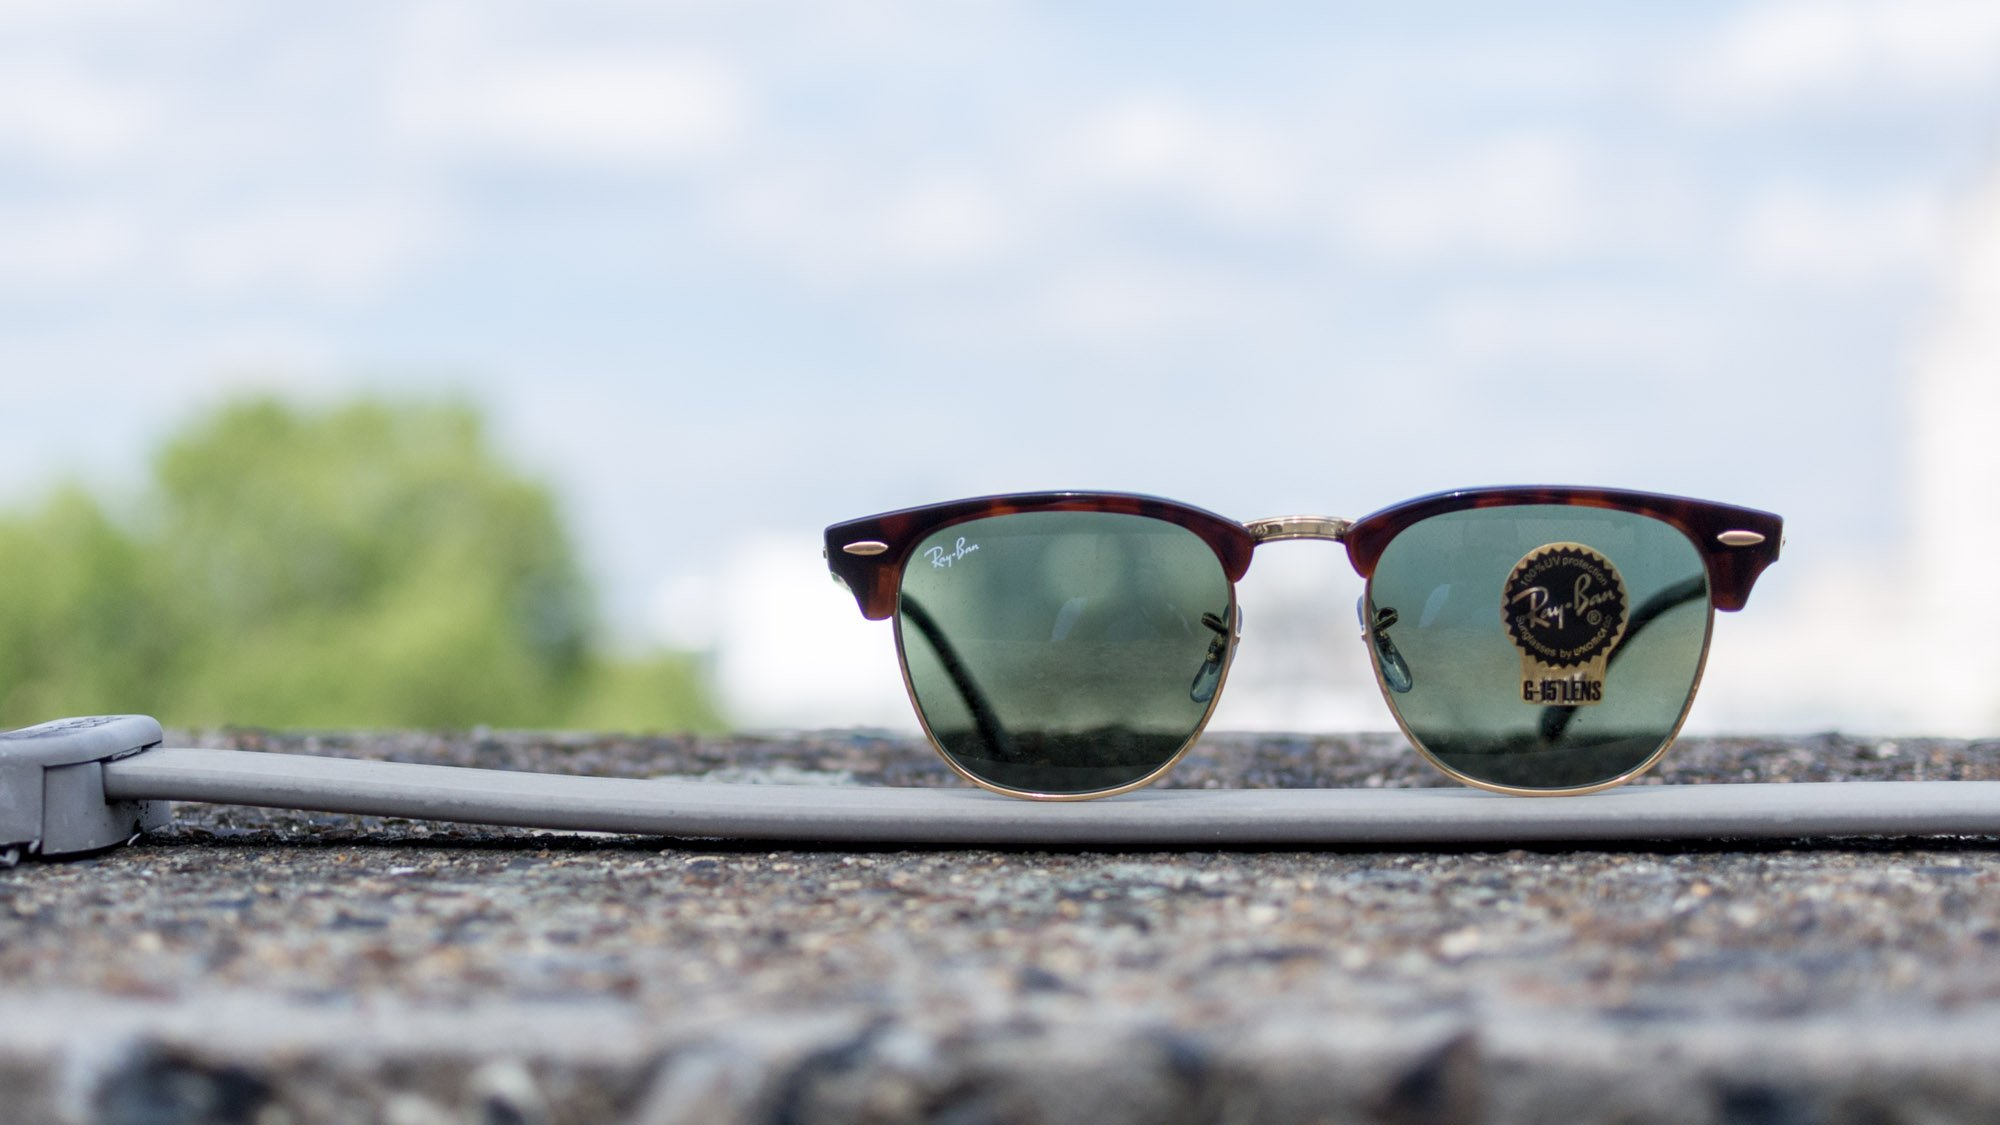 68ac086b4c The Clubmaster range is ideal if you want to blend Ray-Ban s iconic style  with some unique colour splashes of your own choosing.